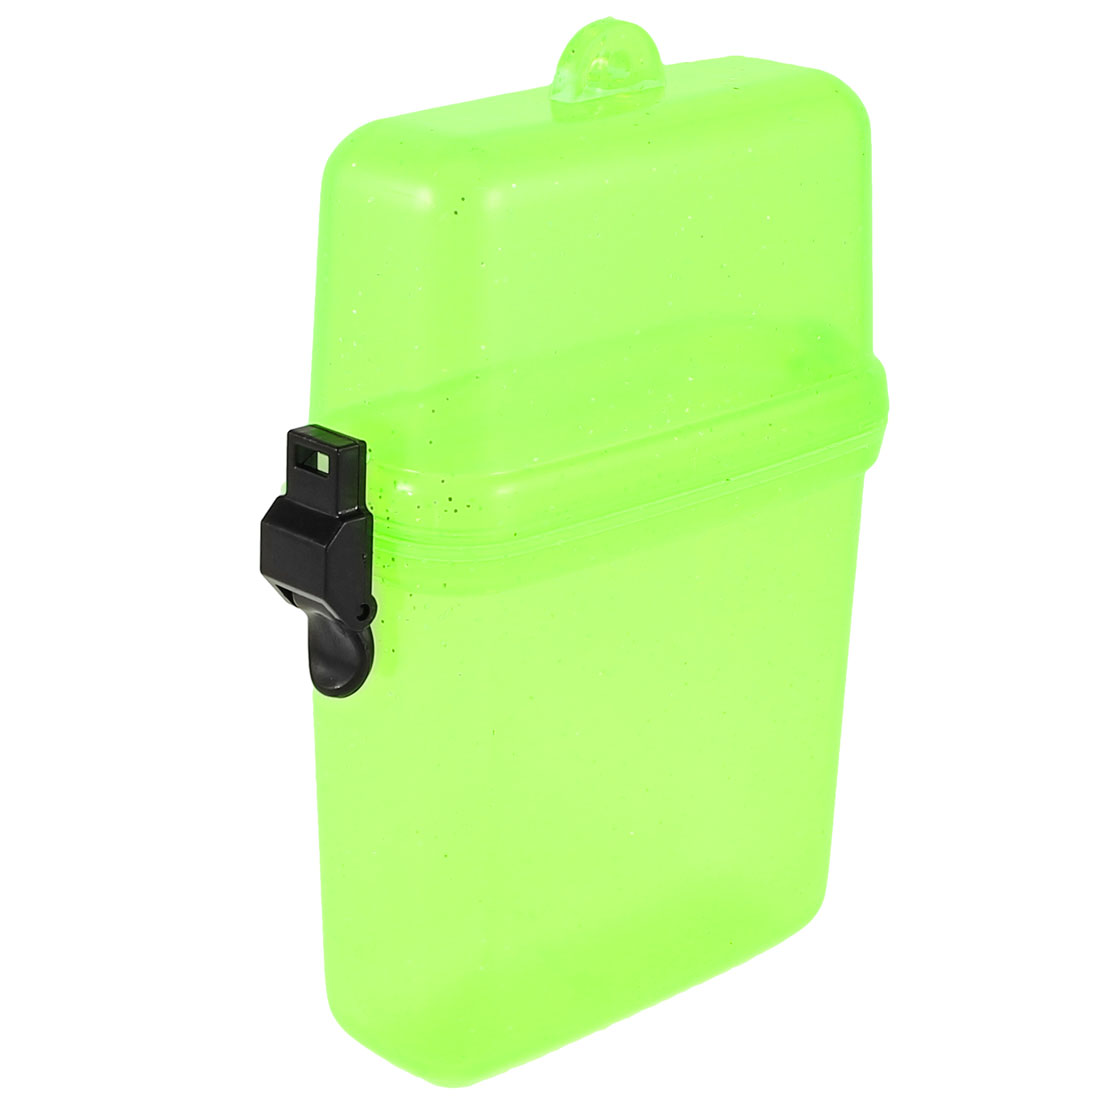 Plastic Waterproof Case Box Clear Yellow Green for Mobile Phone Watches